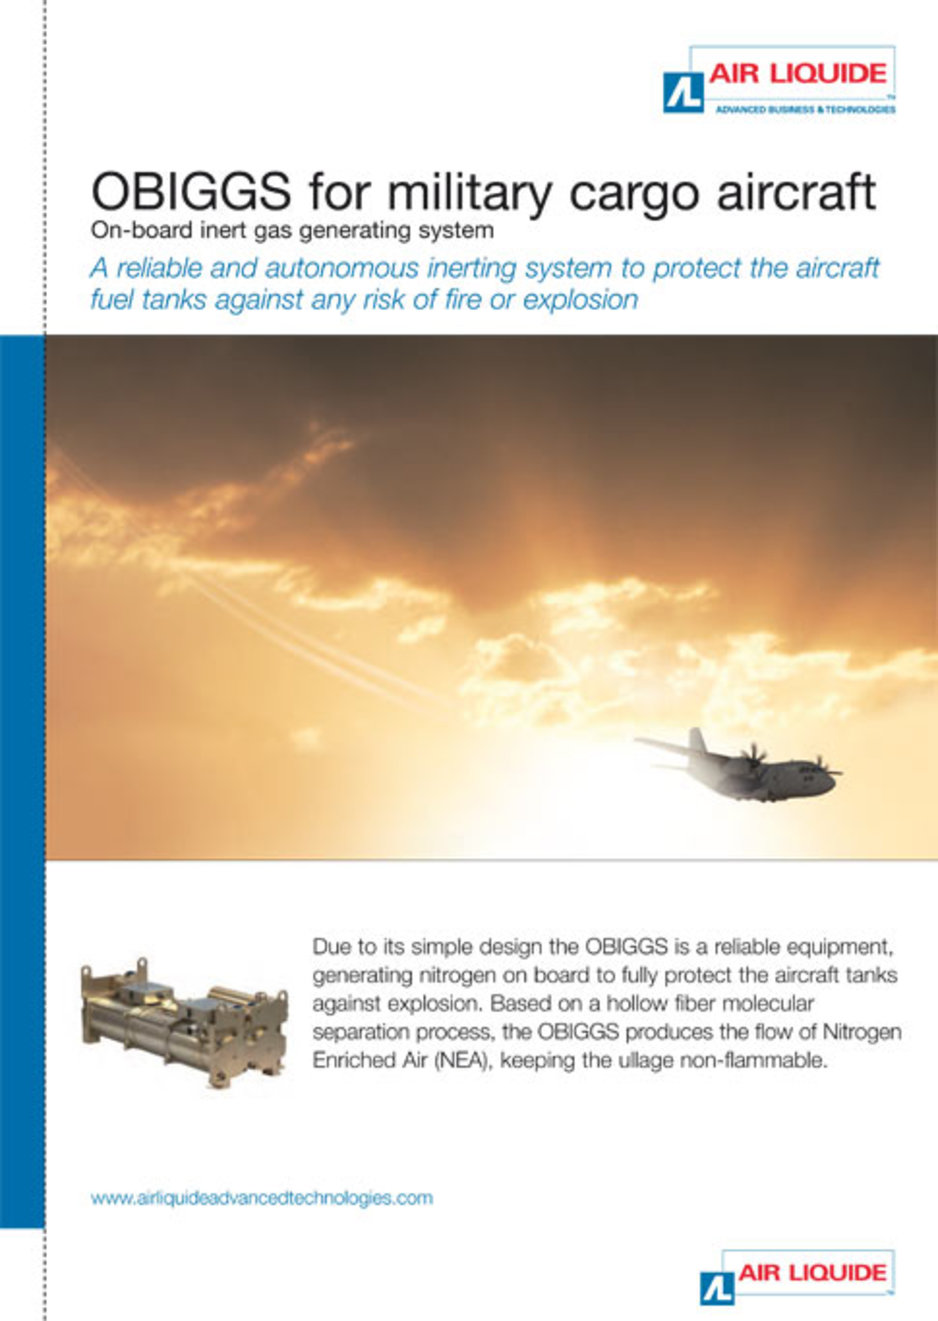 OBIGGS for military cargo aircraft